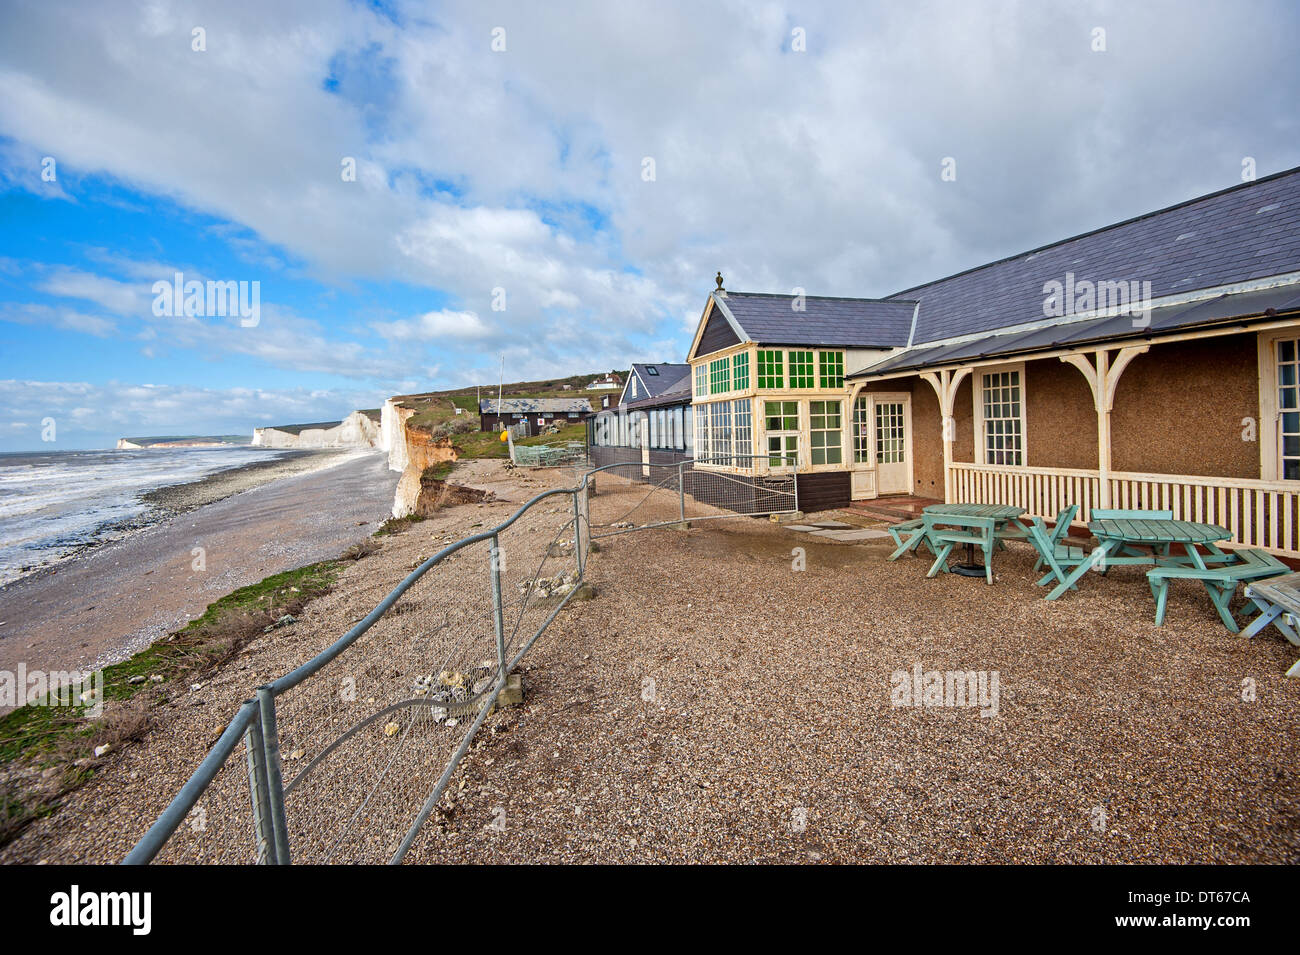 Cliffs at Birling Gap continue to erode at pace after bad weather, the cafe lost part of it's outside space during a collapse - Stock Image